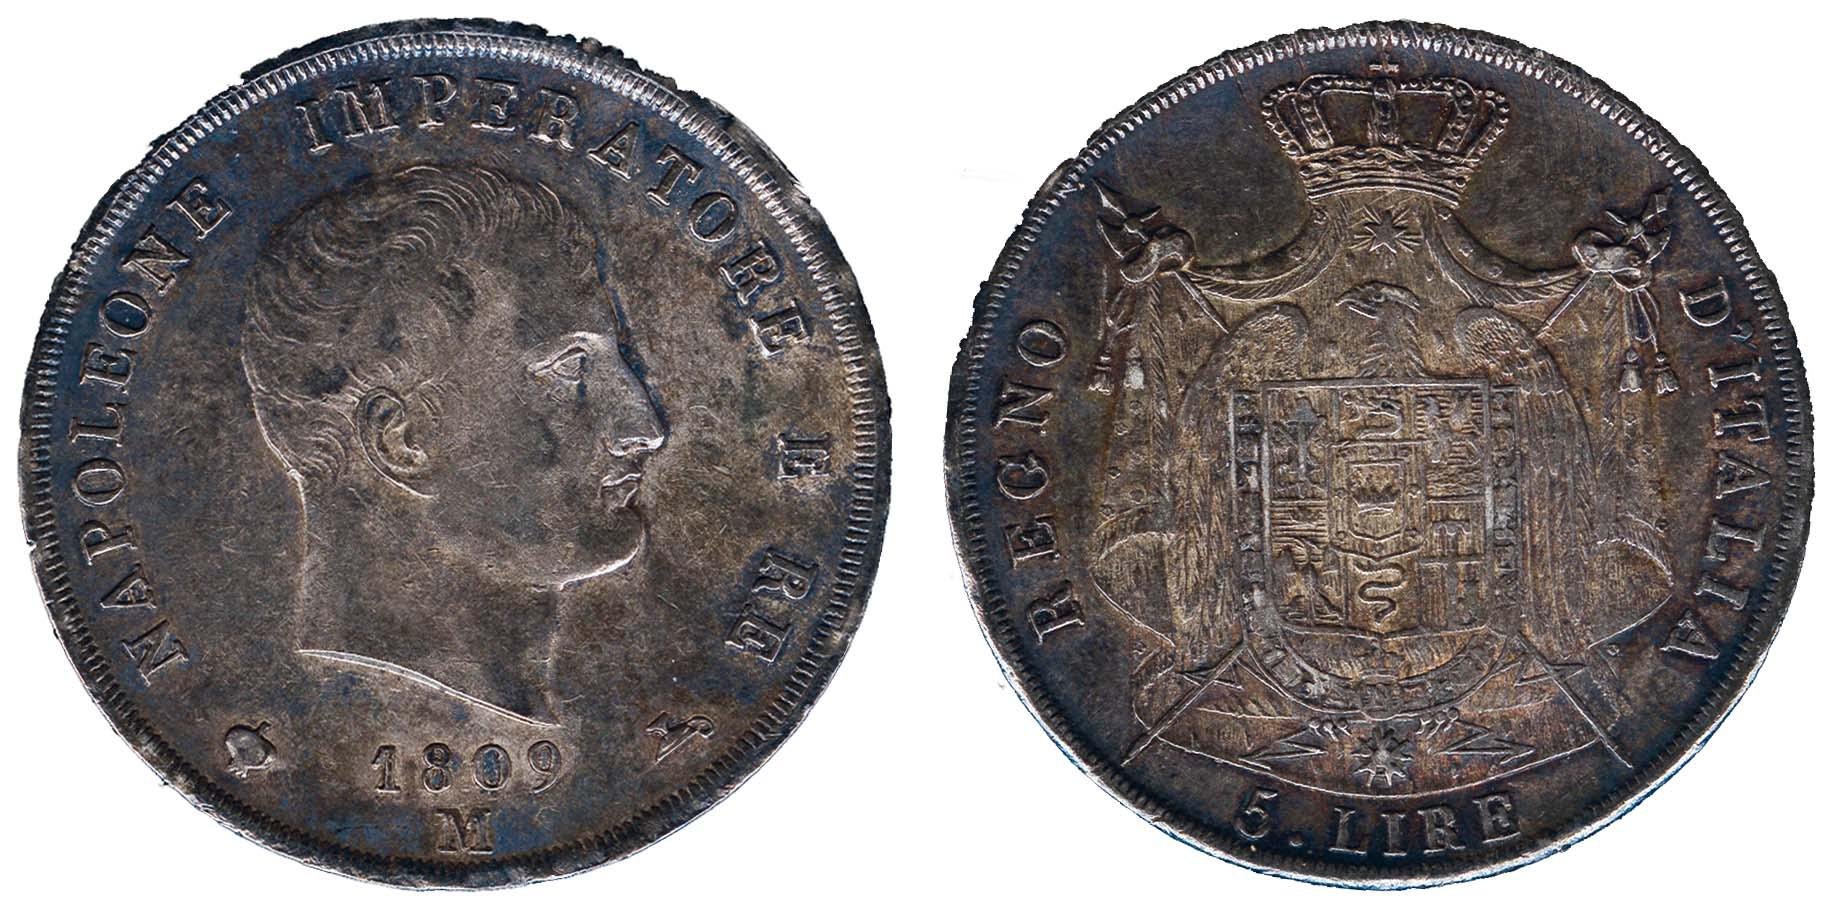 Lot 1416 - Italy and former colonies Italy -  Corinphila Veilingen Auction 250-253 - Day 2 - Coins, medals, Netherlands and former colonies